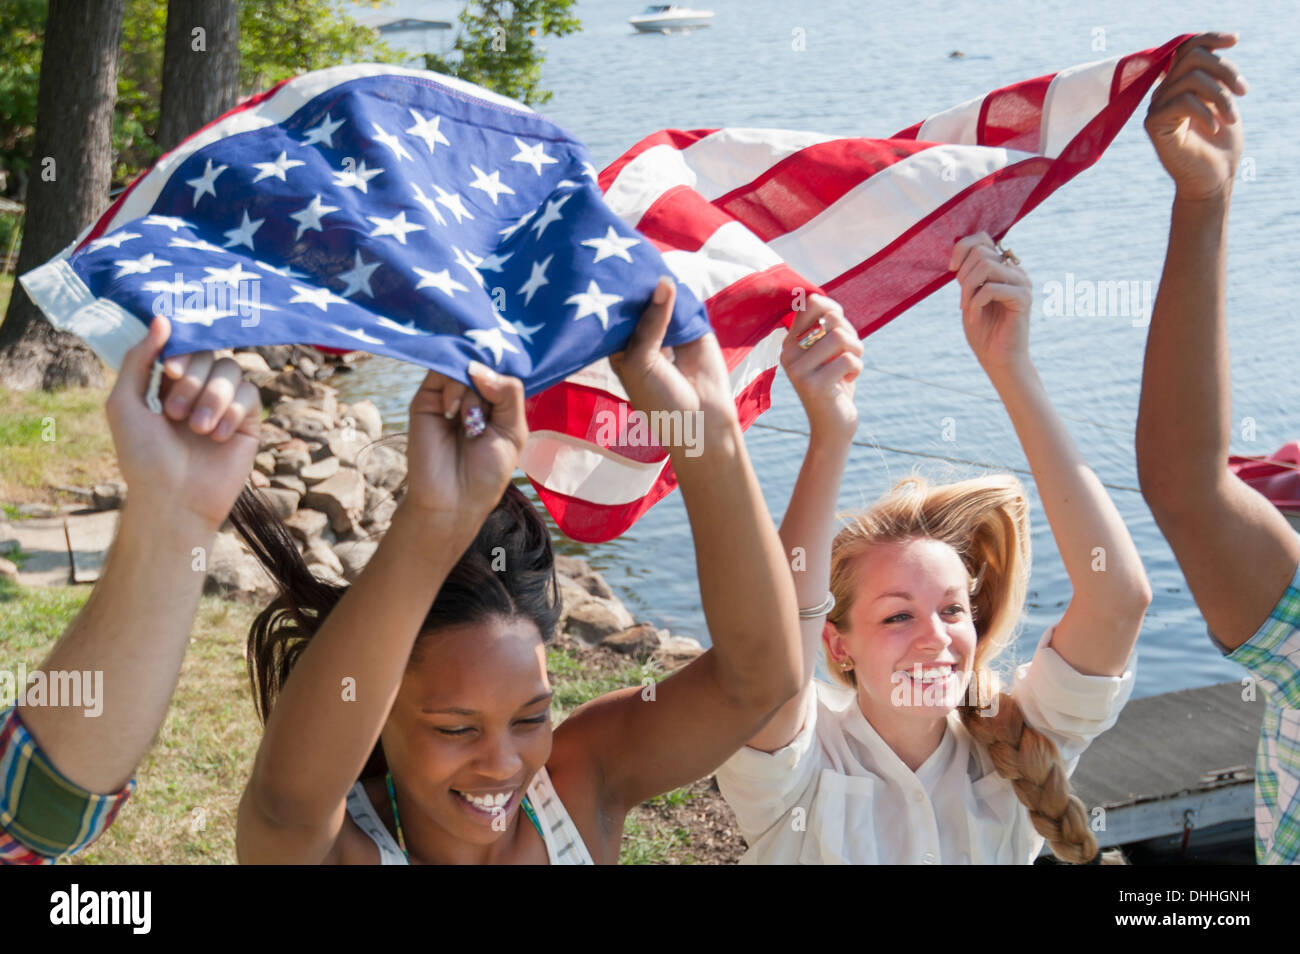 Friends holding US flag above heads, smiling - Stock Image